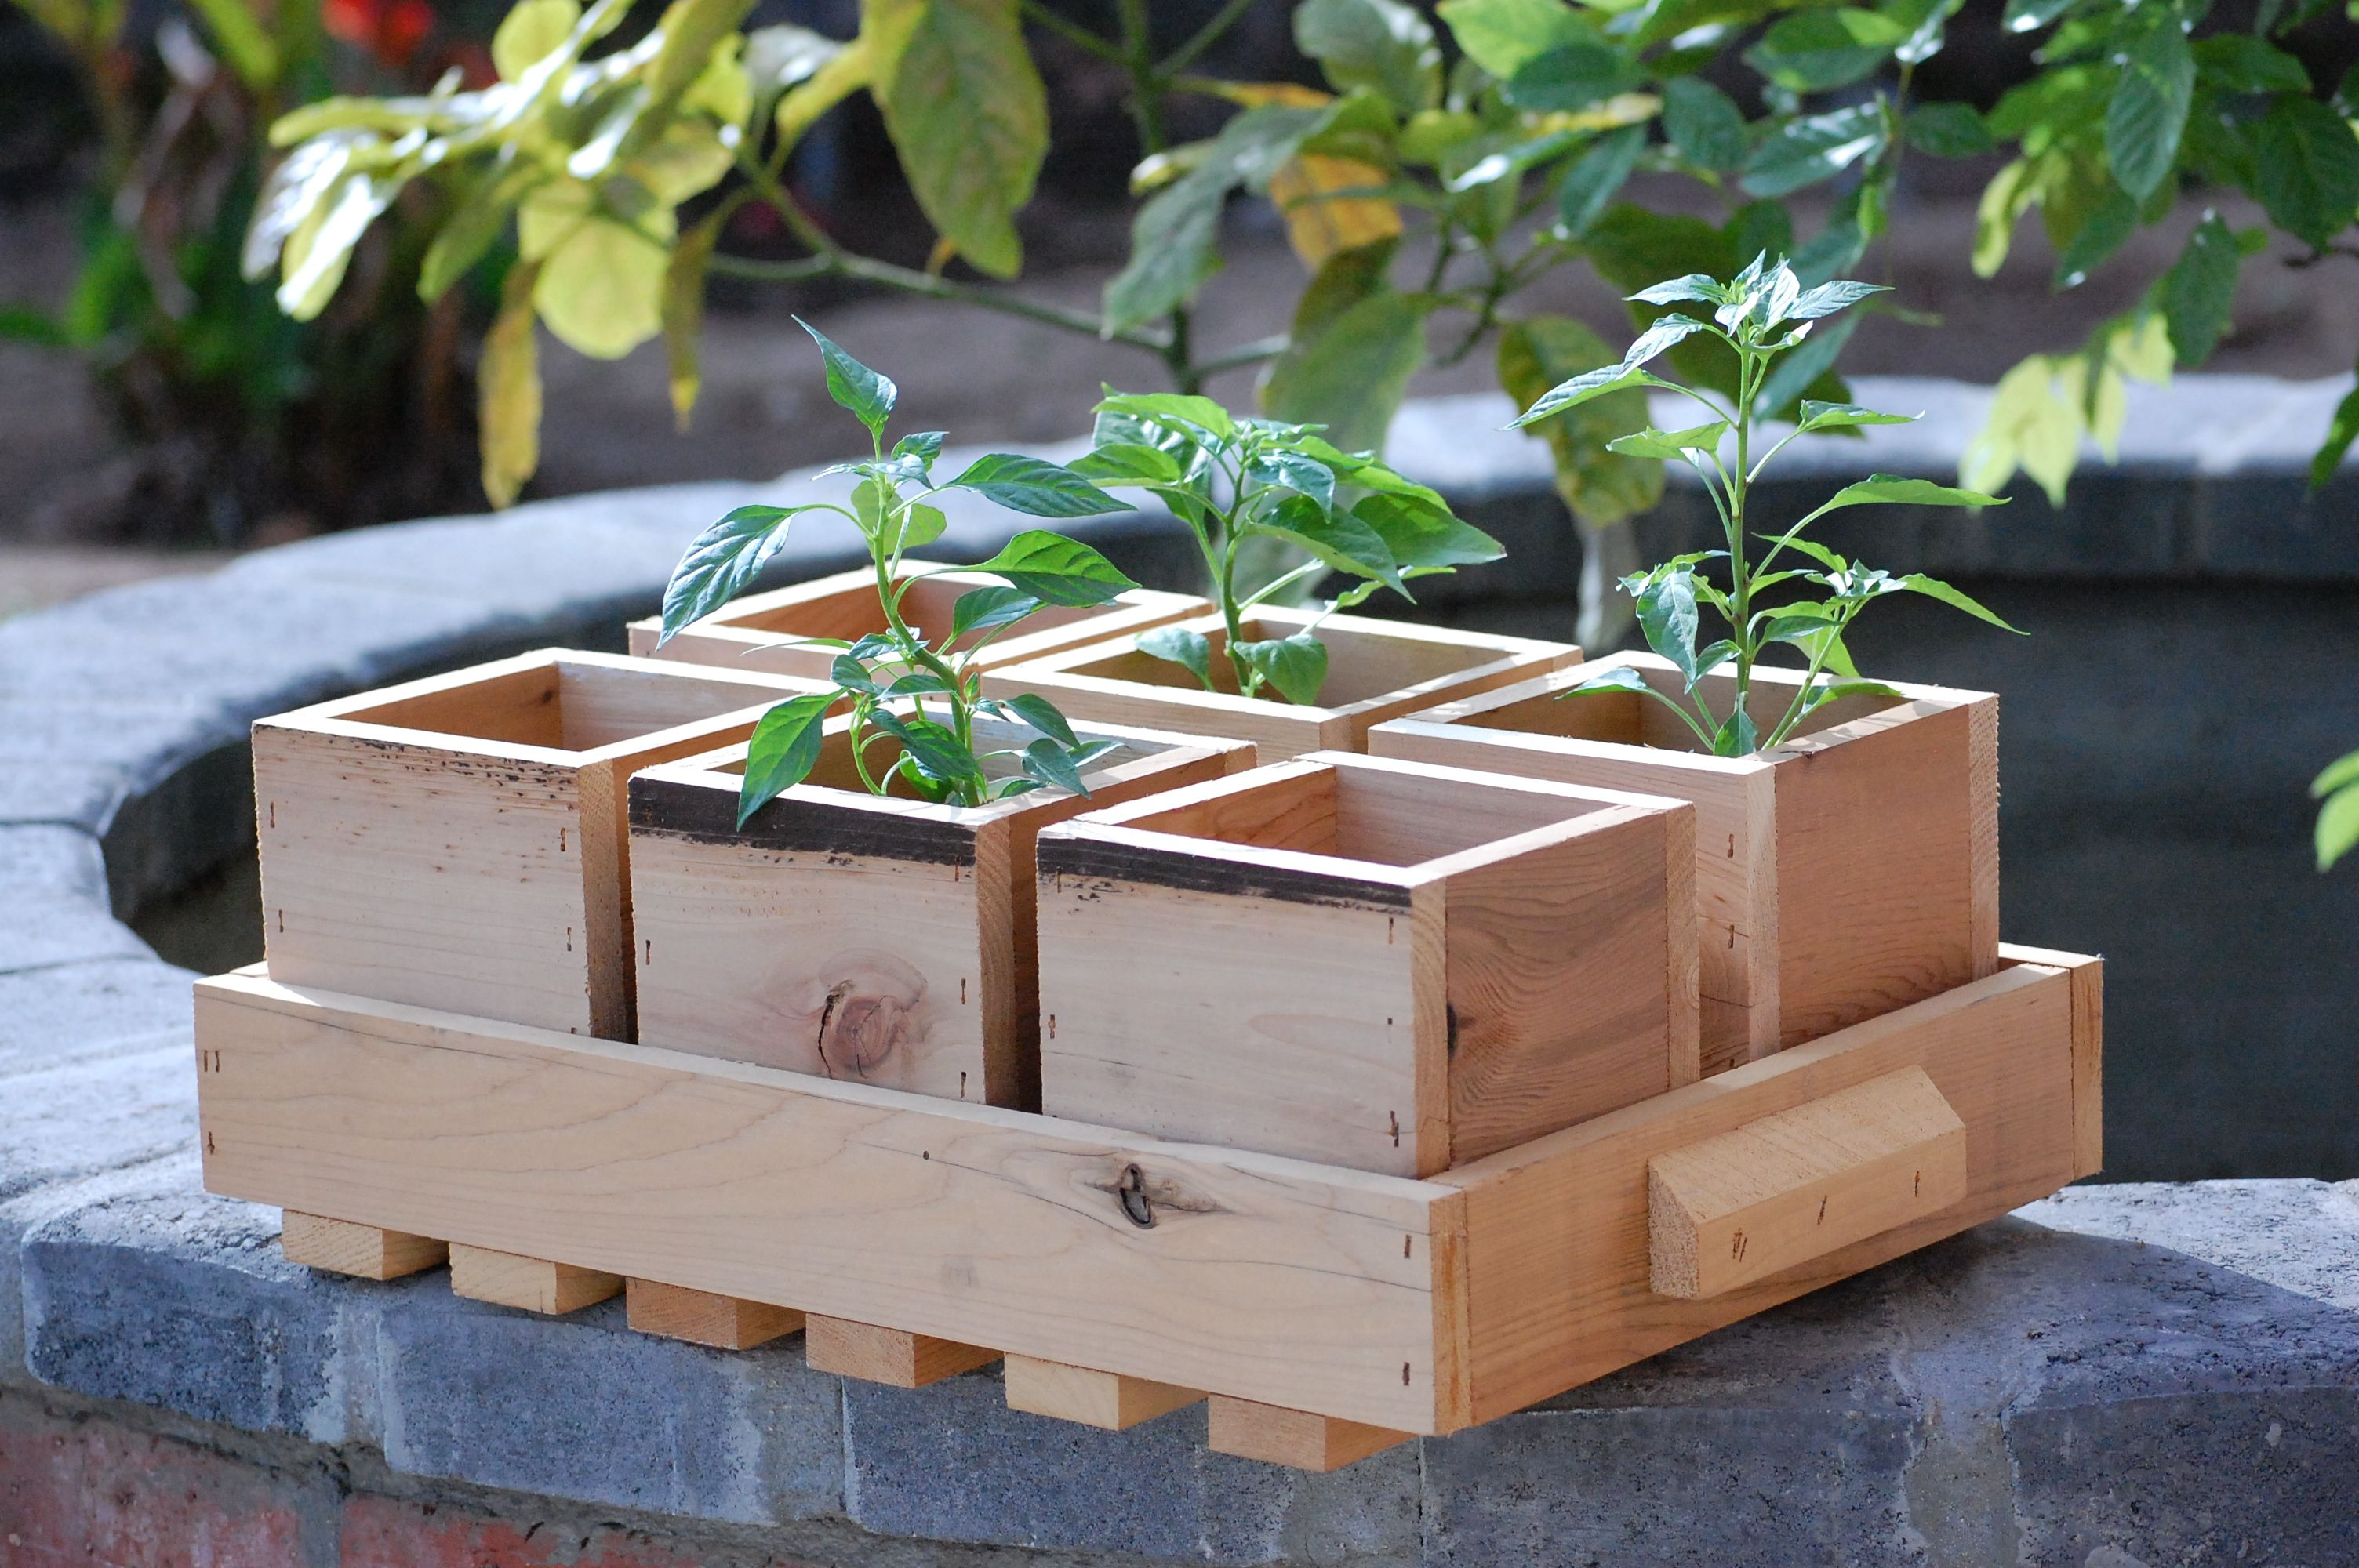 Wooden Herb Garden Planters   Are You Looking For The Best Garden Tools And  Ideas Online